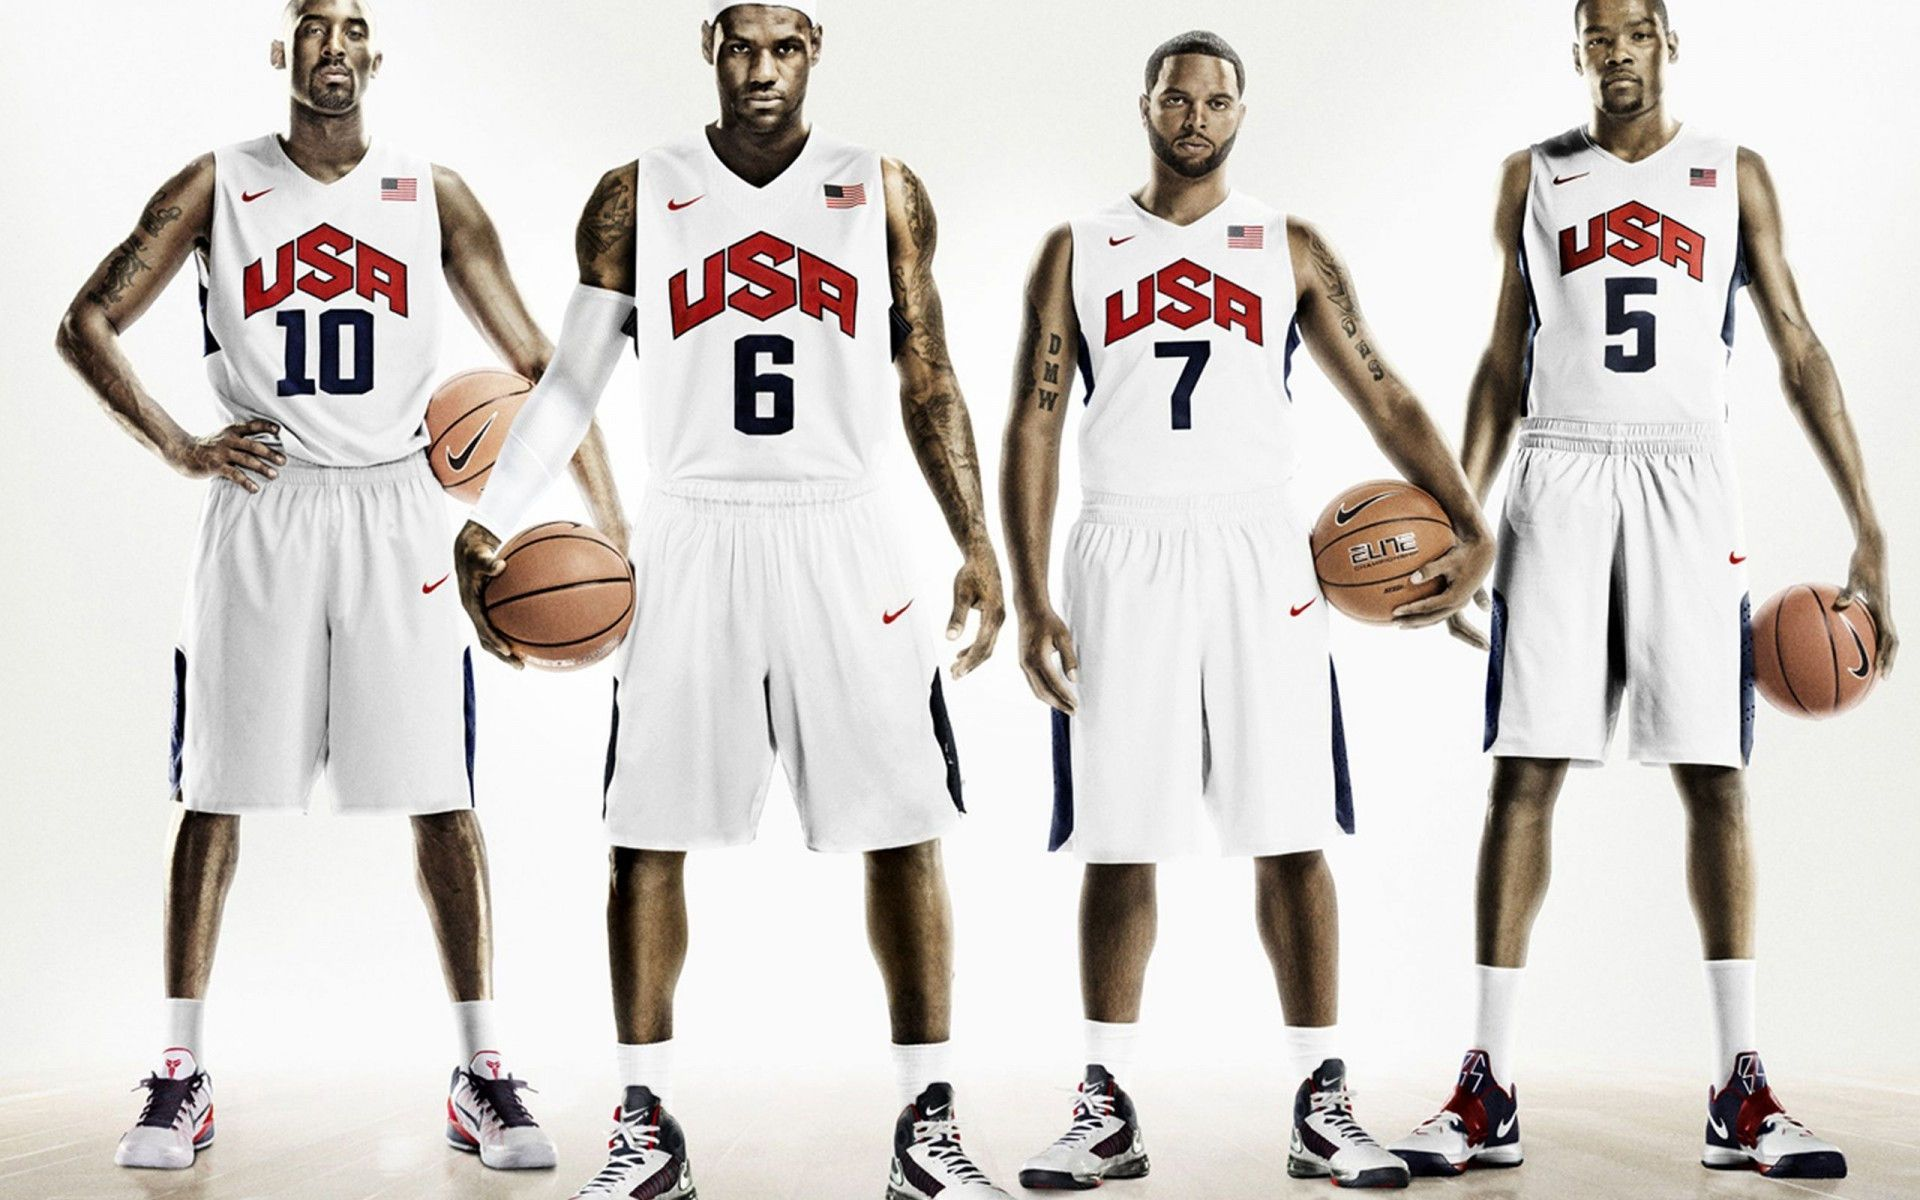 Nike Basketball released the latest Nike Hyper Elite Uniform and Hyperdunk  for Team USA led by LeBron, Kobe, KD and DWill.